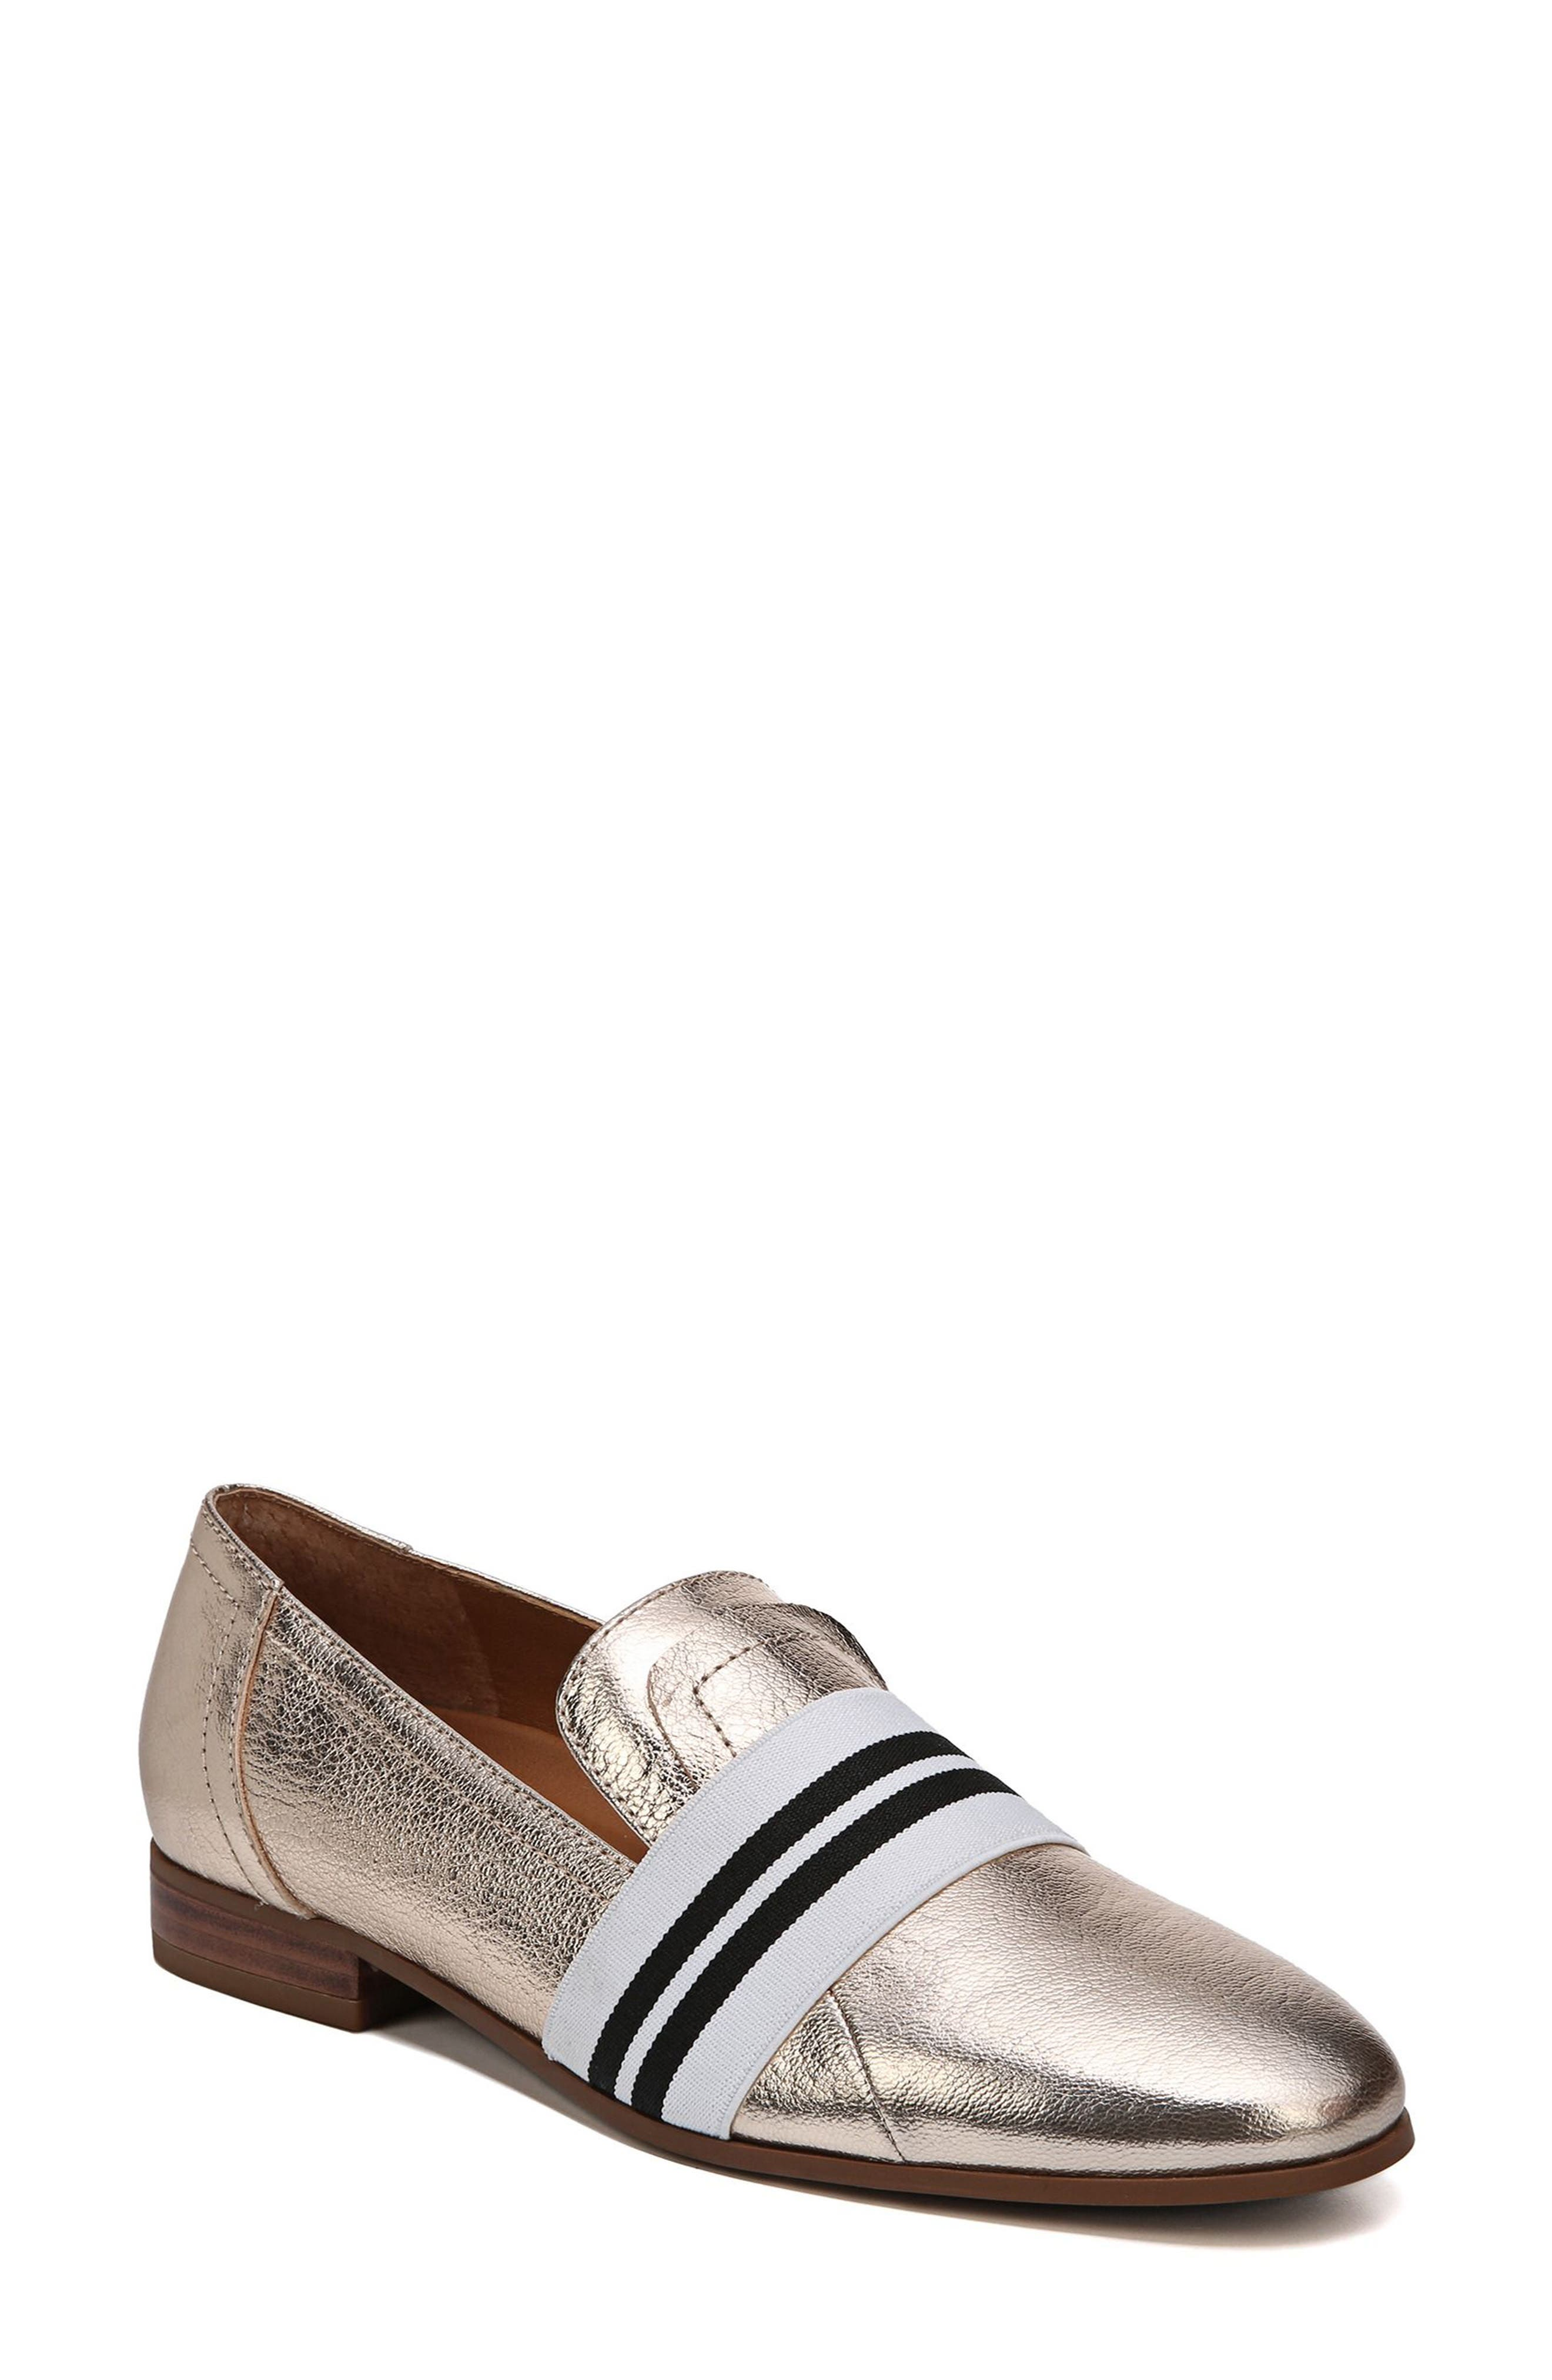 Odyssey Loafer,                         Main,                         color, PLATINO LEATHER